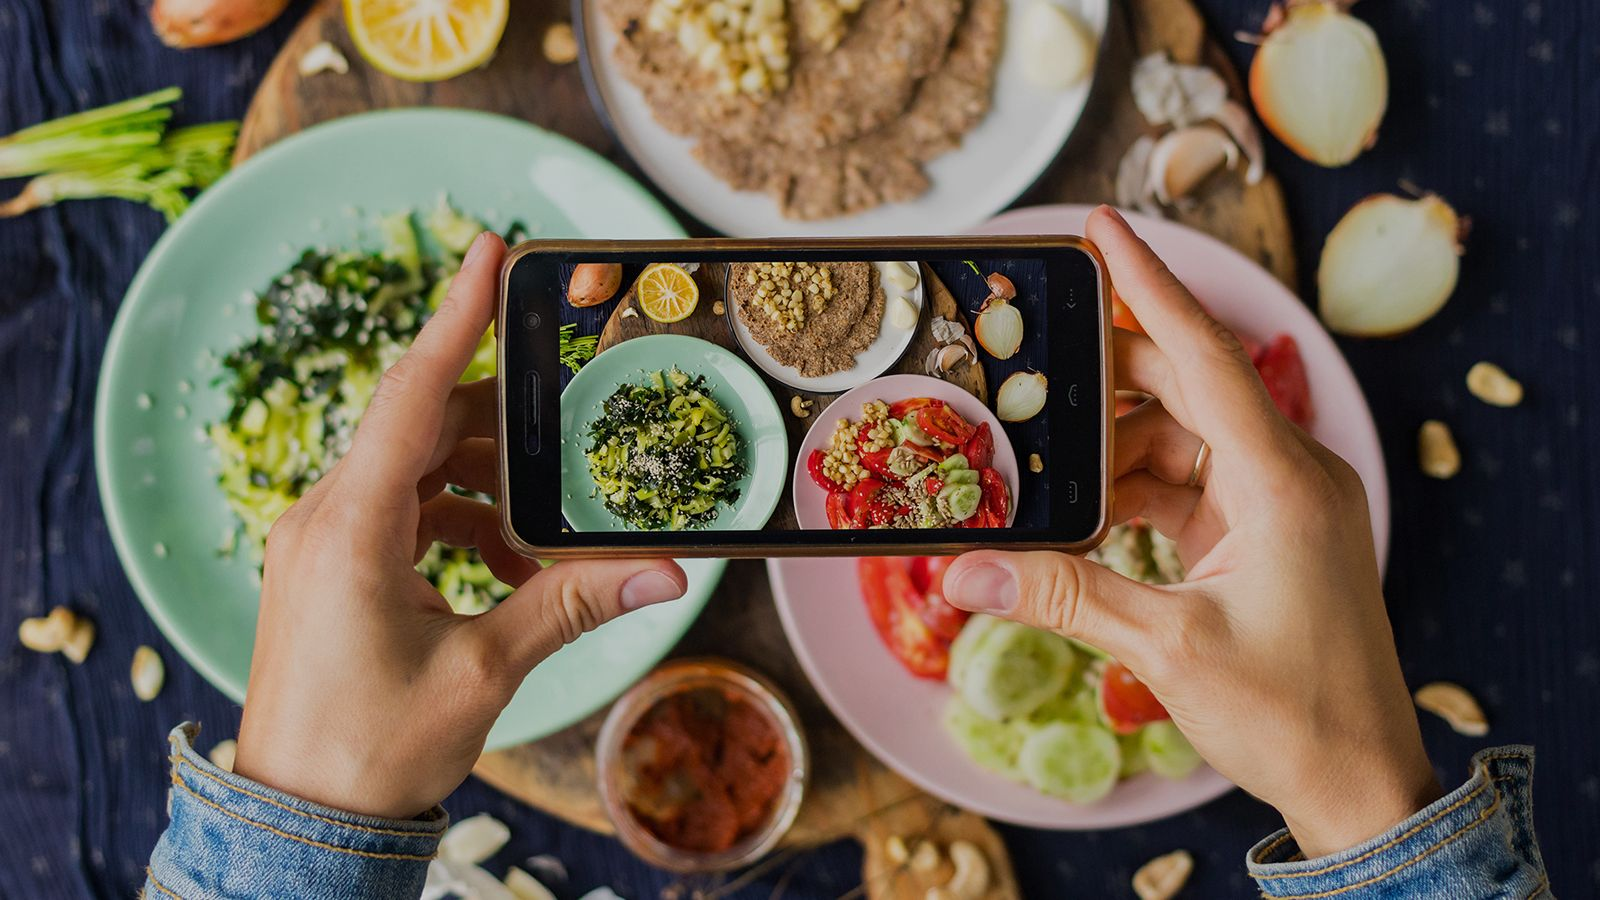 2021 Trends That May Influence Food Marketing